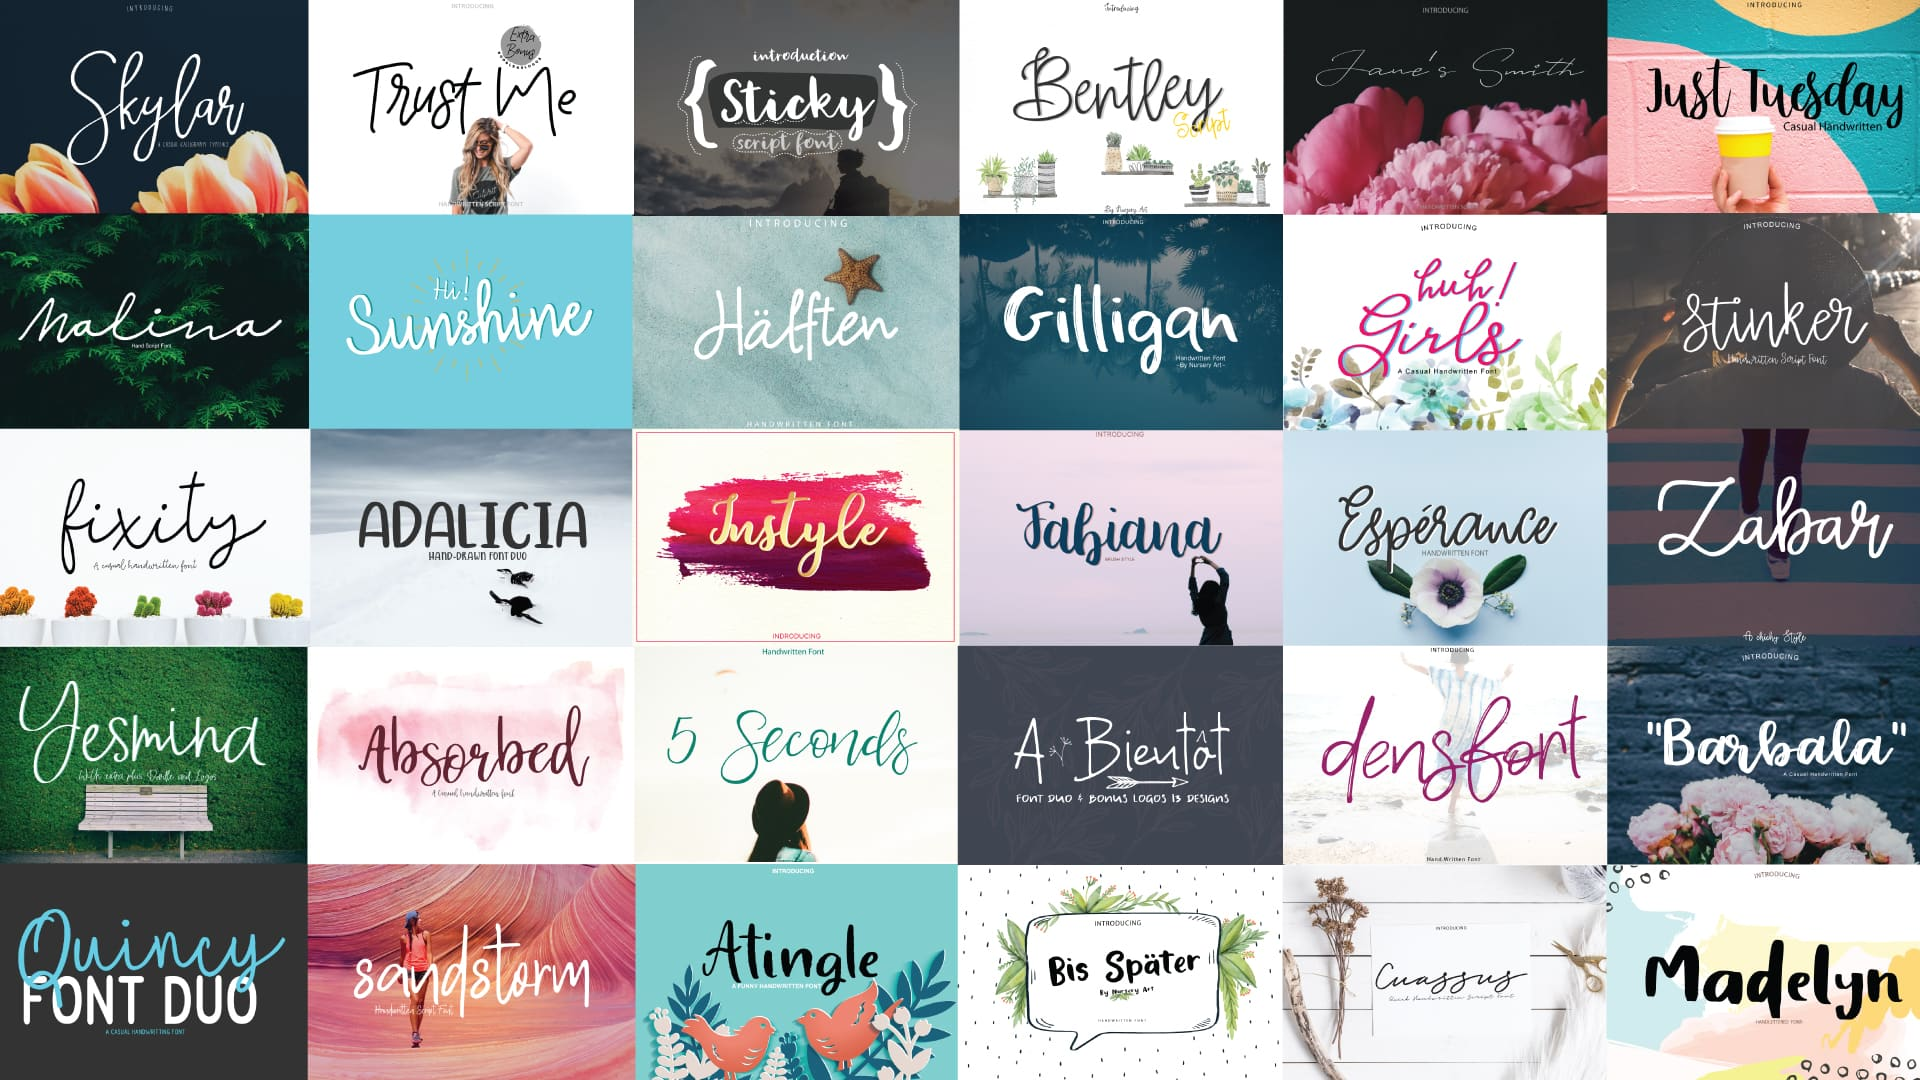 95+ Best Hand Lettering Fonts (Premium and Free) To Type the Most Important Words - present03 min